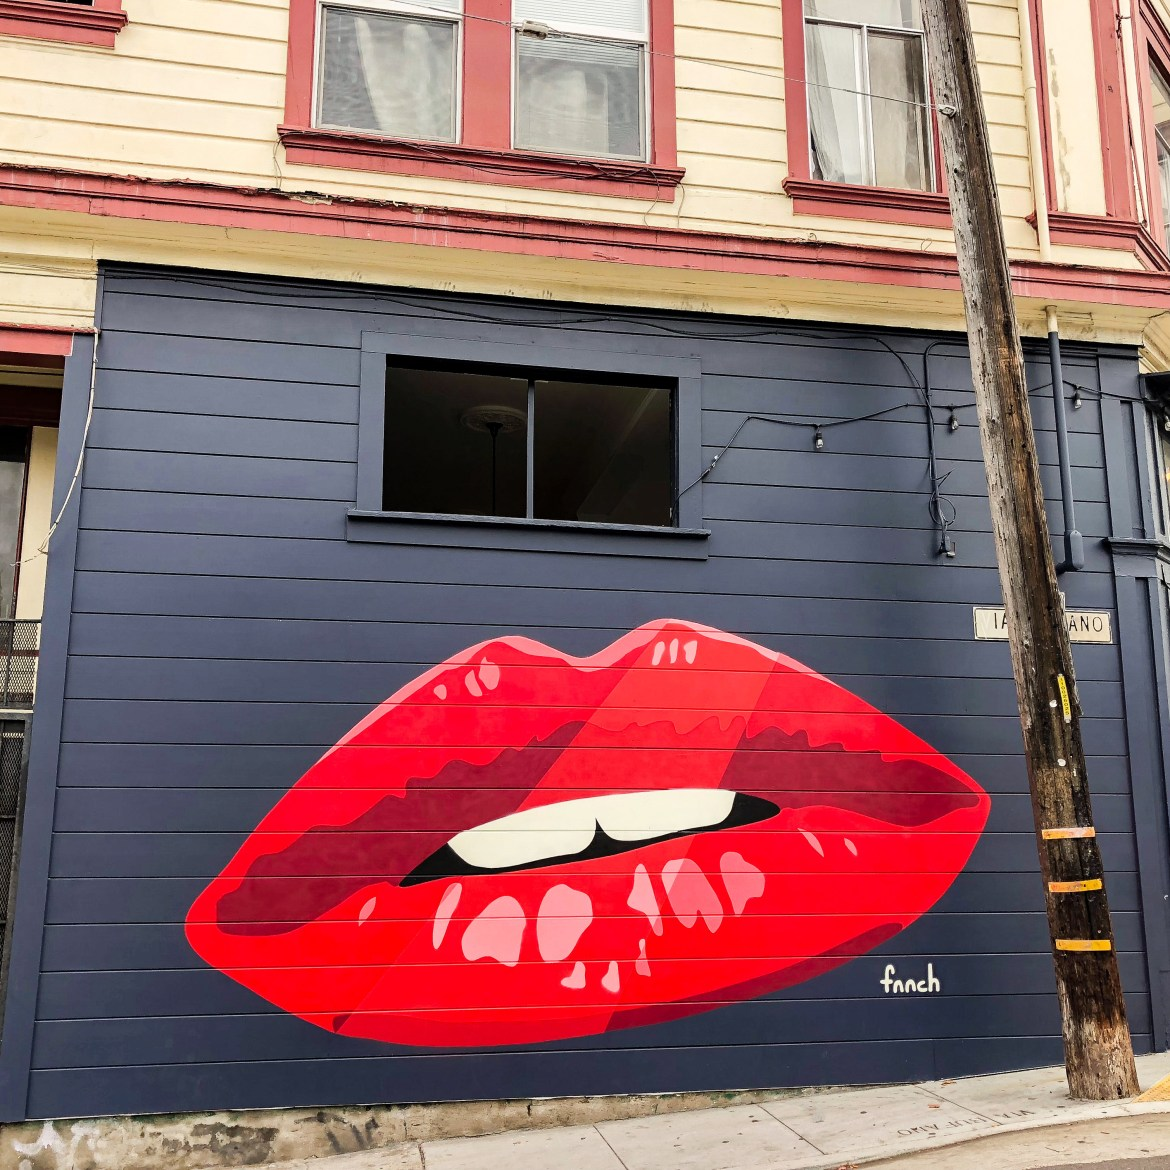 Fnnch Street Art San Francisco California